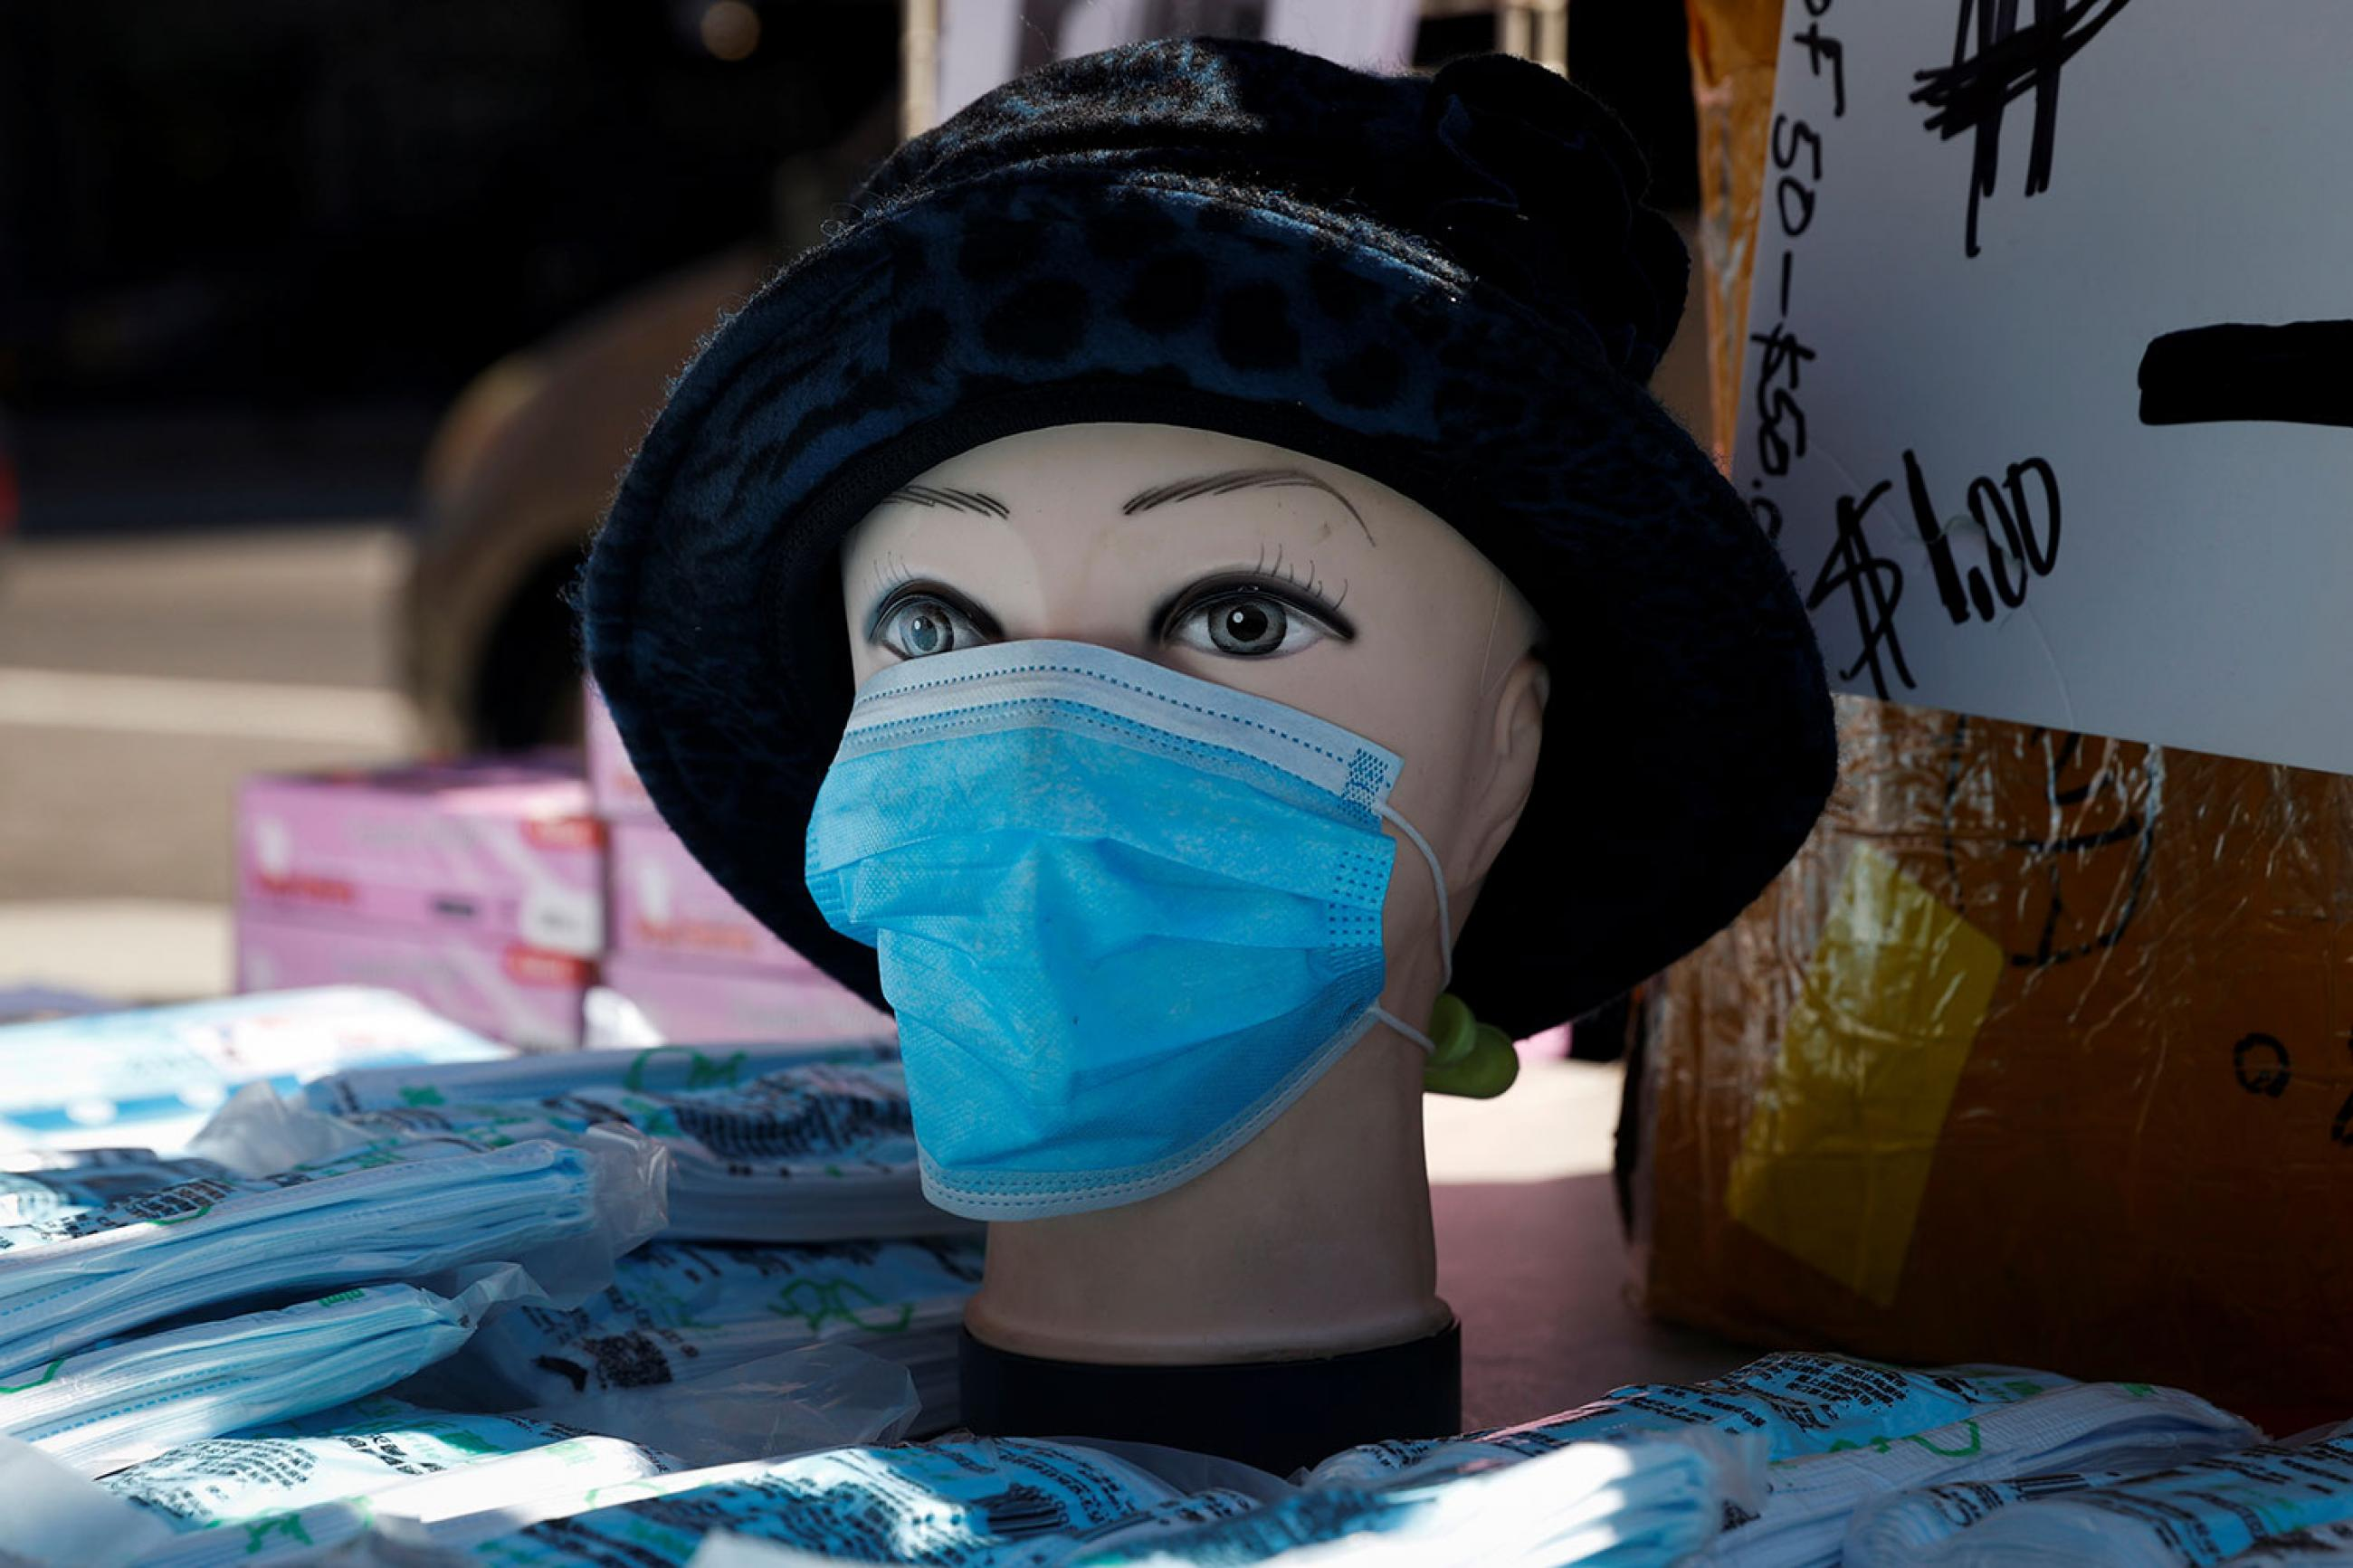 A mannequin with a surgical mask on display where a vendor sells packages of masks on a corner in the Chelsea neighborhood during the outbreak of the coronavirus in New York City on March 27, 2020. The photo shows a mannequin wearing a blue mask. REUTERS/Mike Segar